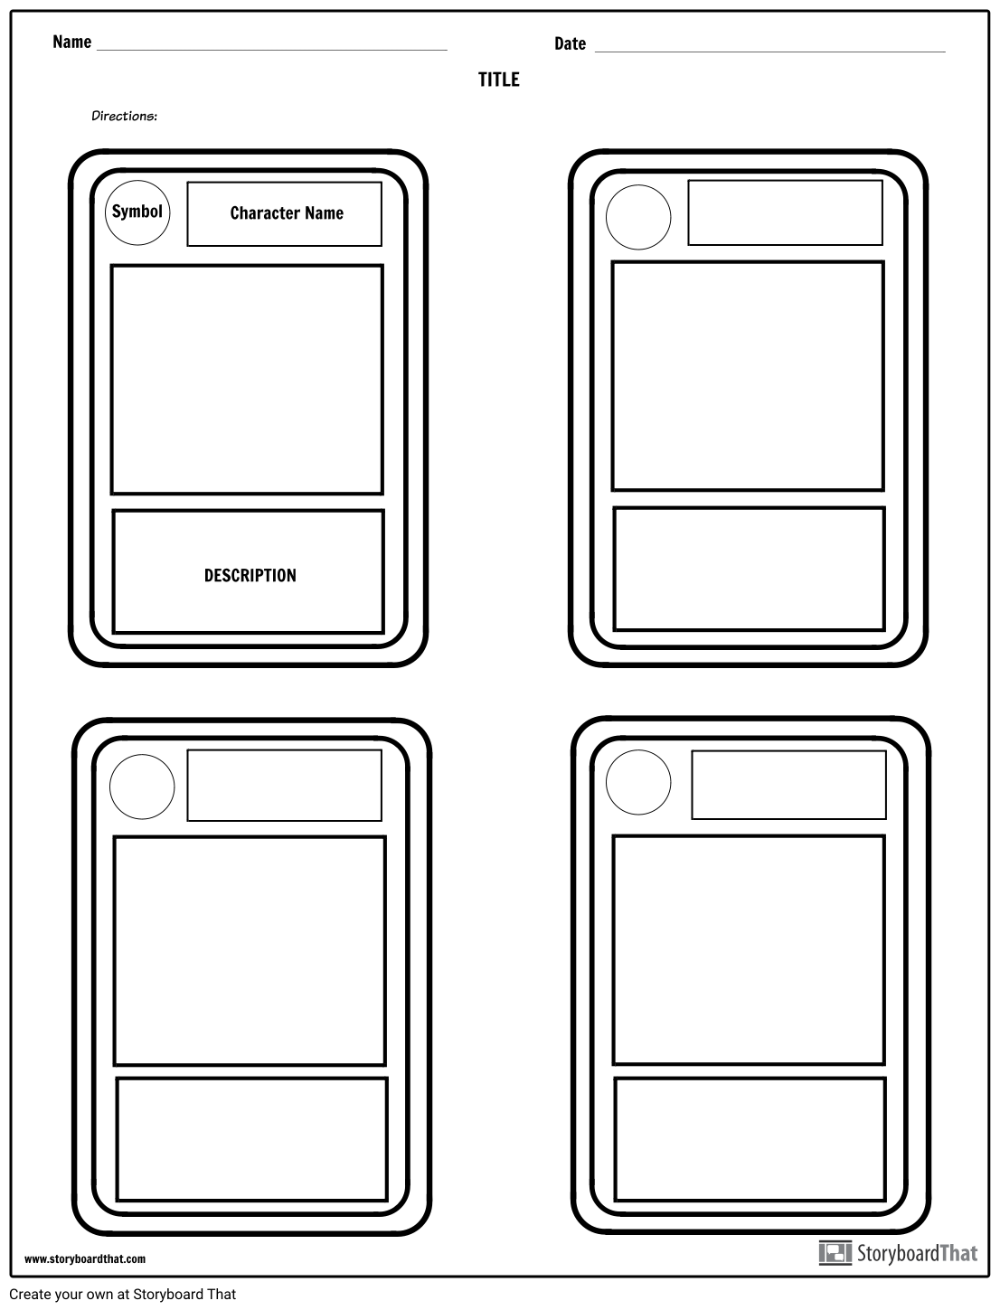 Character Trading Cards Storyboard By Worksheet Templates Trading Card Template Diy Trading Cards Baseball Card Template